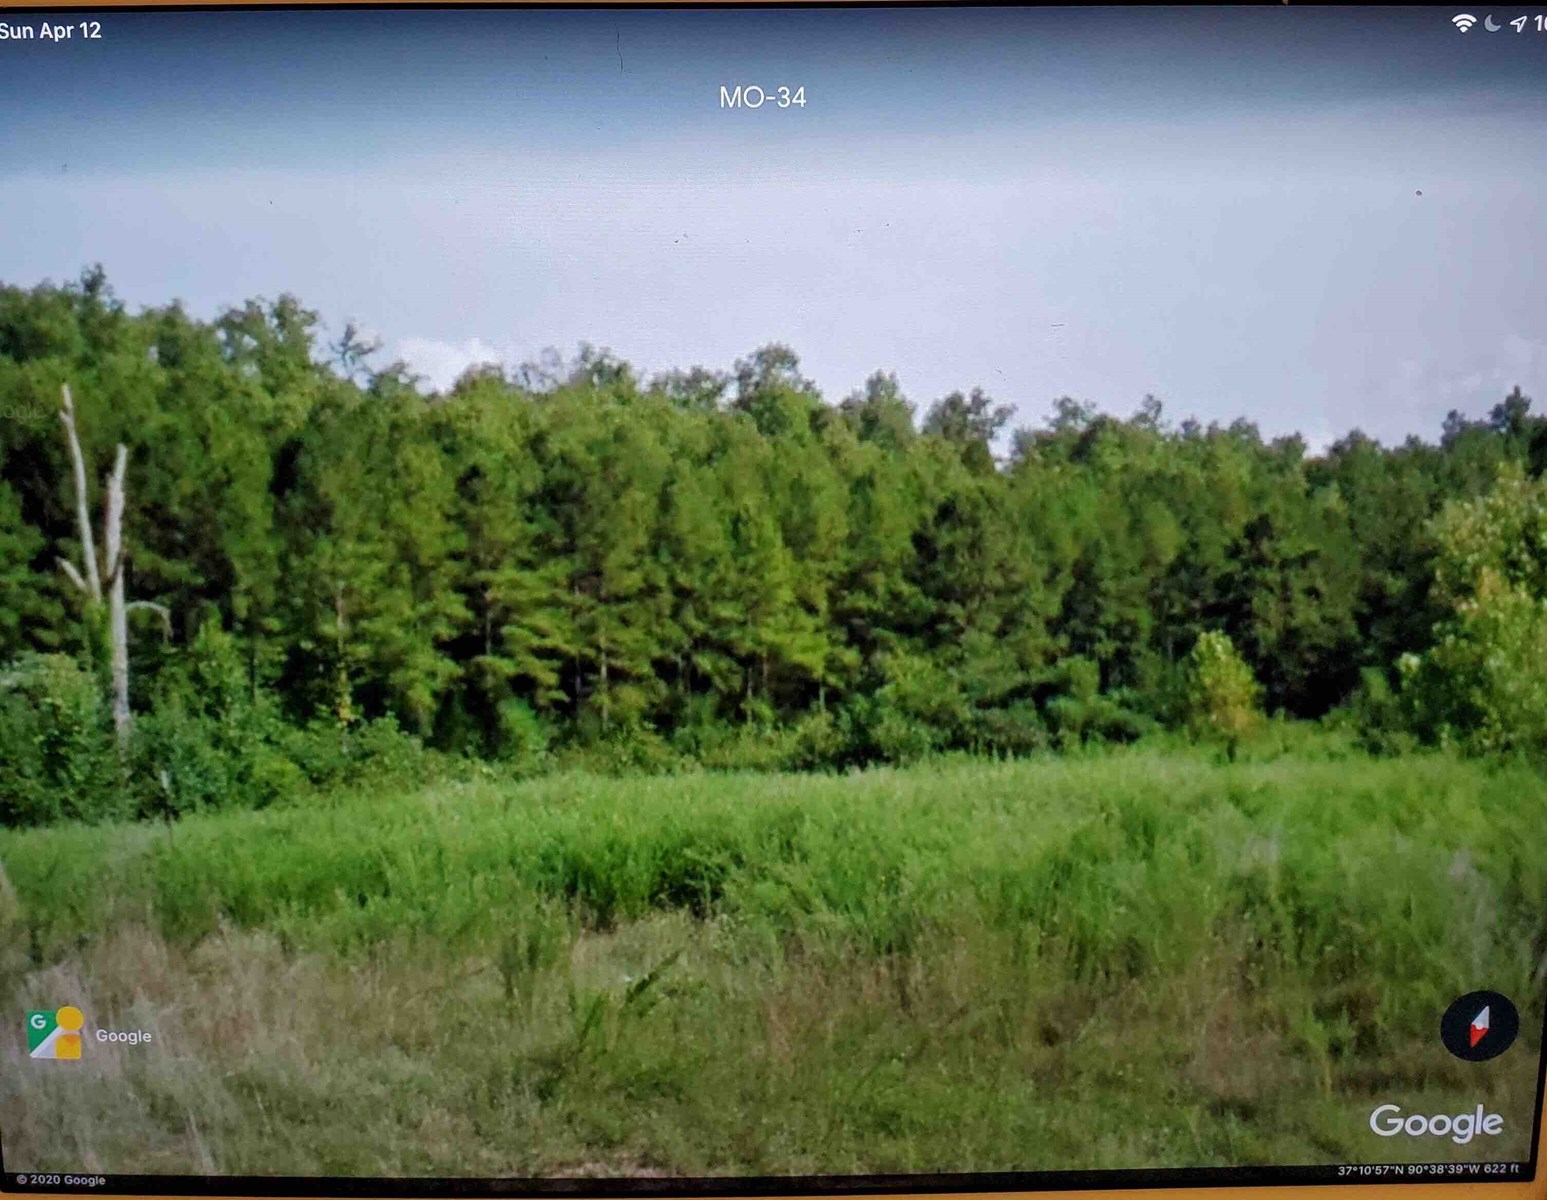 Land for sale near Piedmont Mo